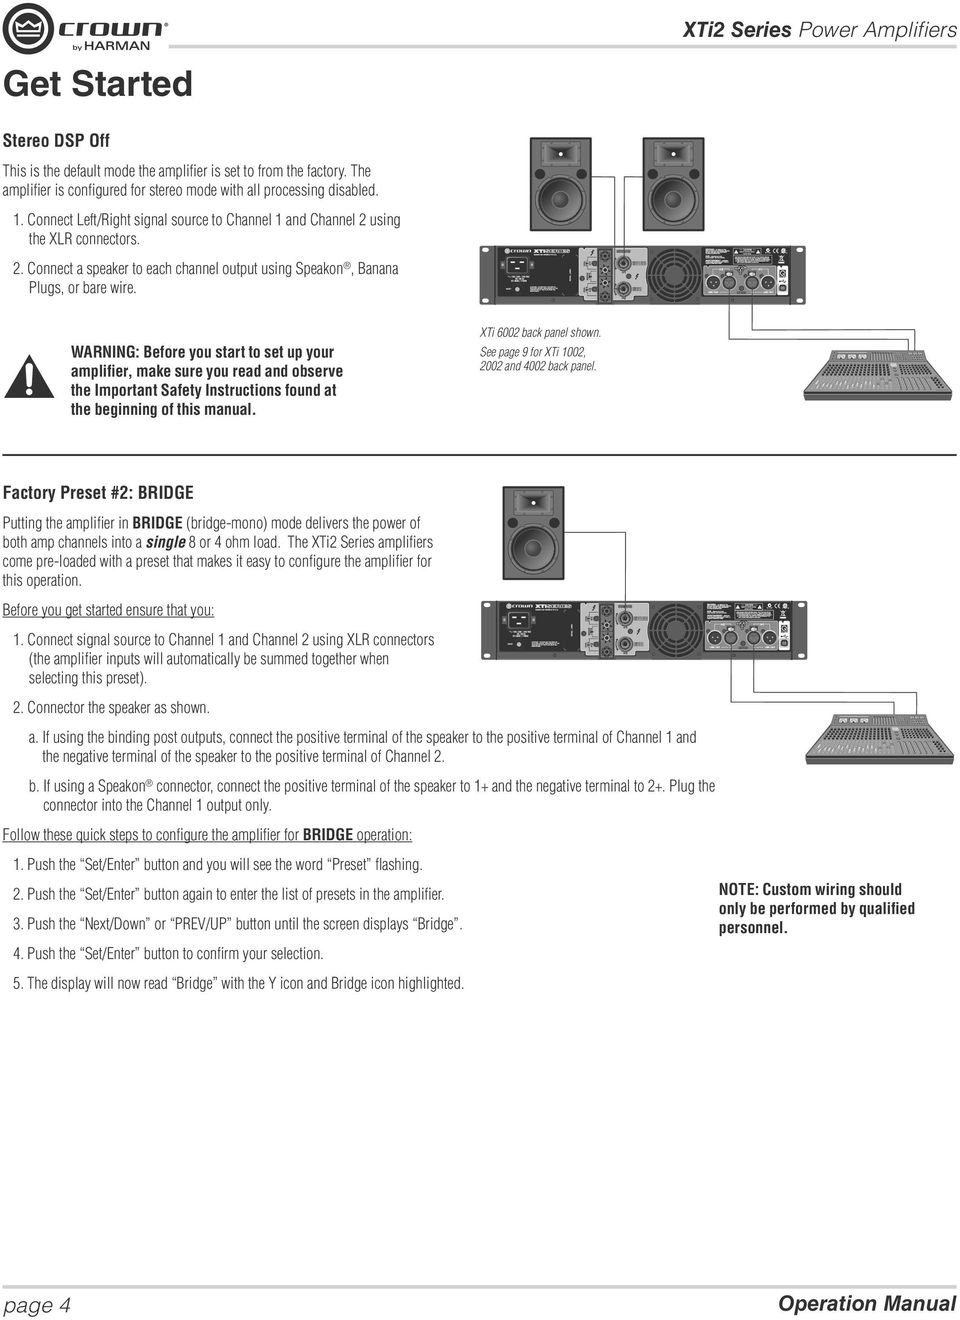 WARNING: Before you start to set up your amplifier, make sure you read and observe the Important Safety Instruc tions found at the beginning of this manual. XTi 6002 back panel shown.